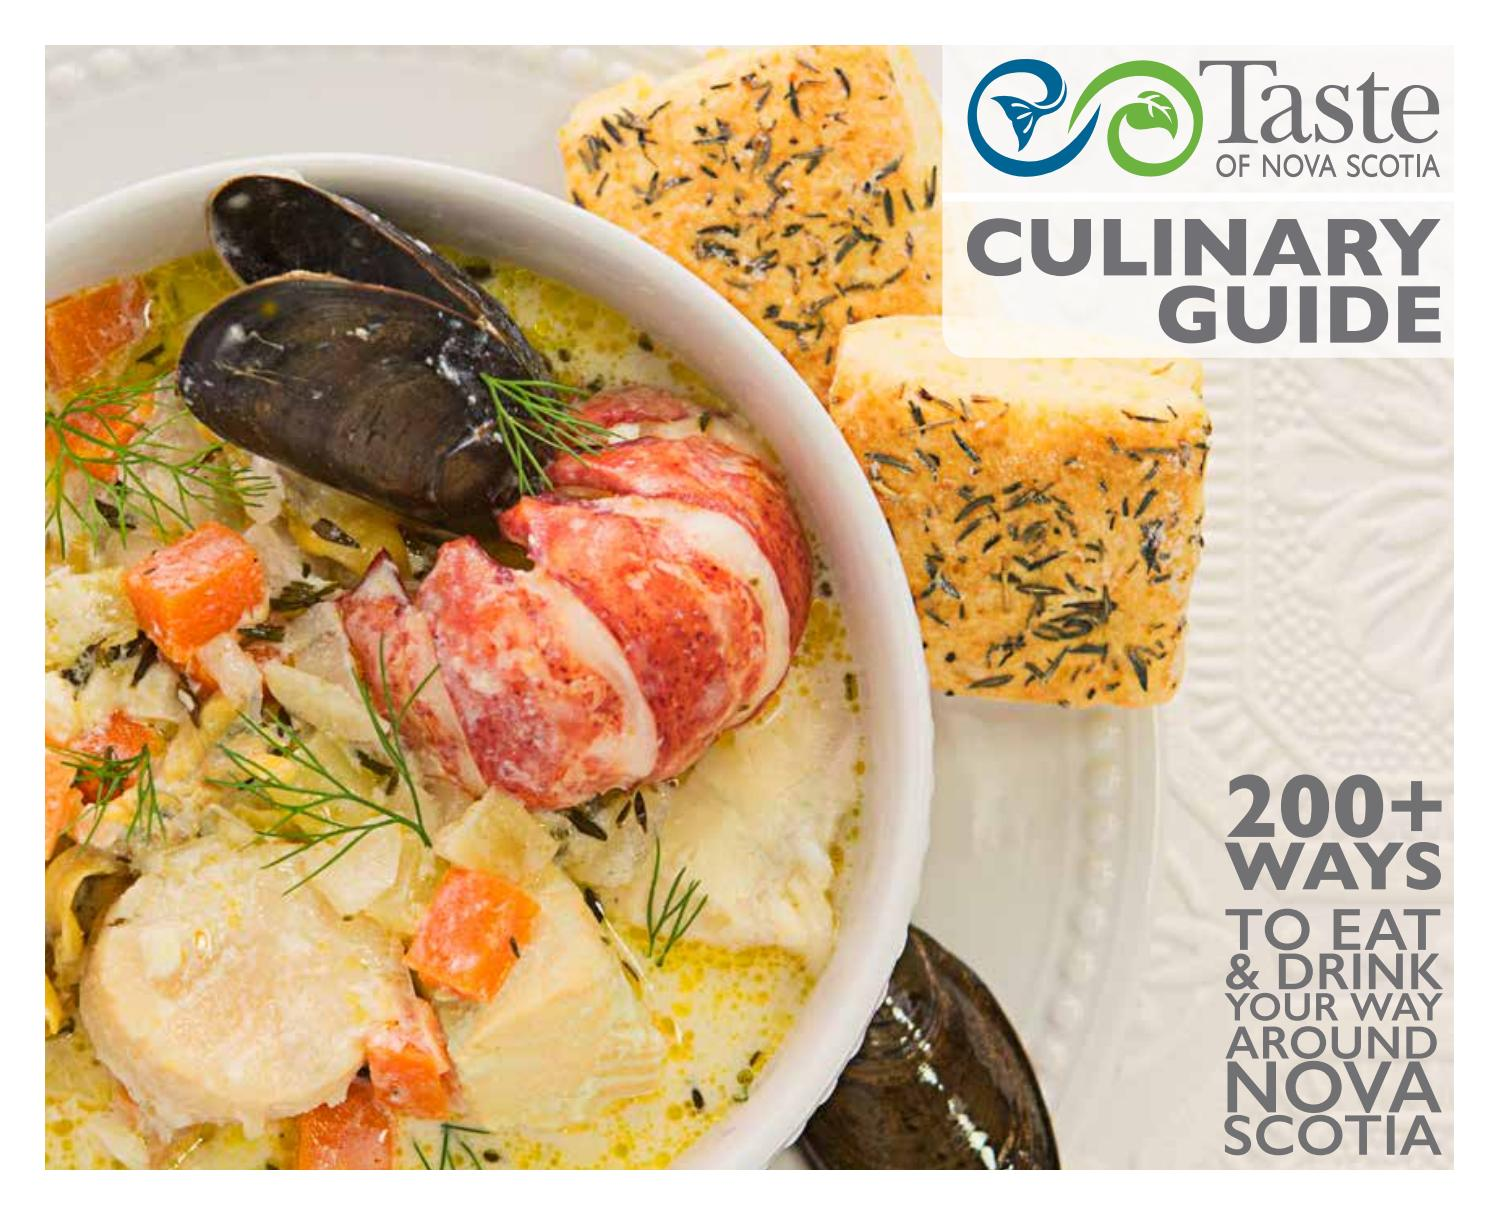 2018 Taste Of Nova Scotia Culinary Guide By Issuu Cool Cold Ice2 Cooling Pad 156 Inch